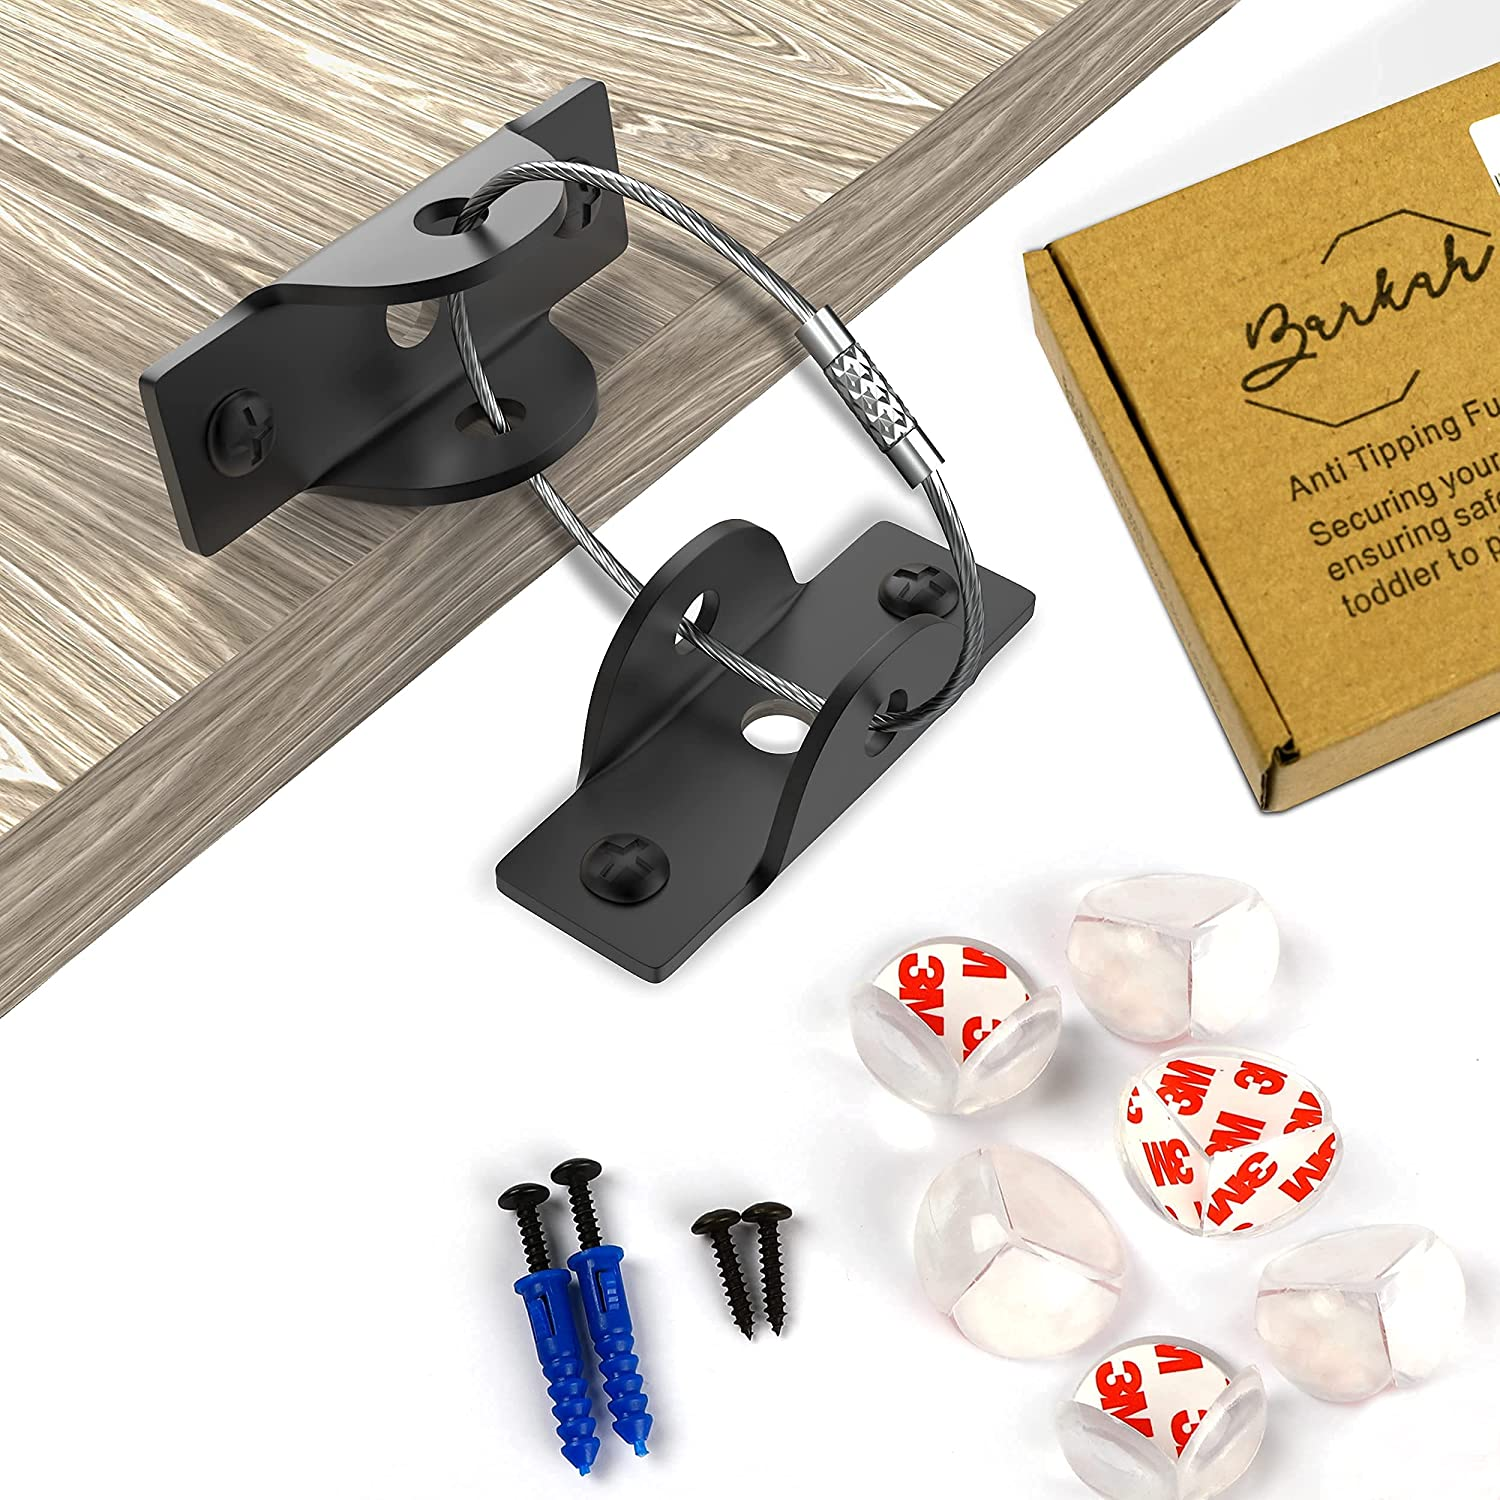 BARKAH Furniture Anchors (Pack of 6), Anti Tip Furniture Straps Kit for Baby Proofing, Heavy-Duty Furniture Wall Anchor for Baby Safety, Comes with Additional 6 Pieces of Corner Protectors for Baby